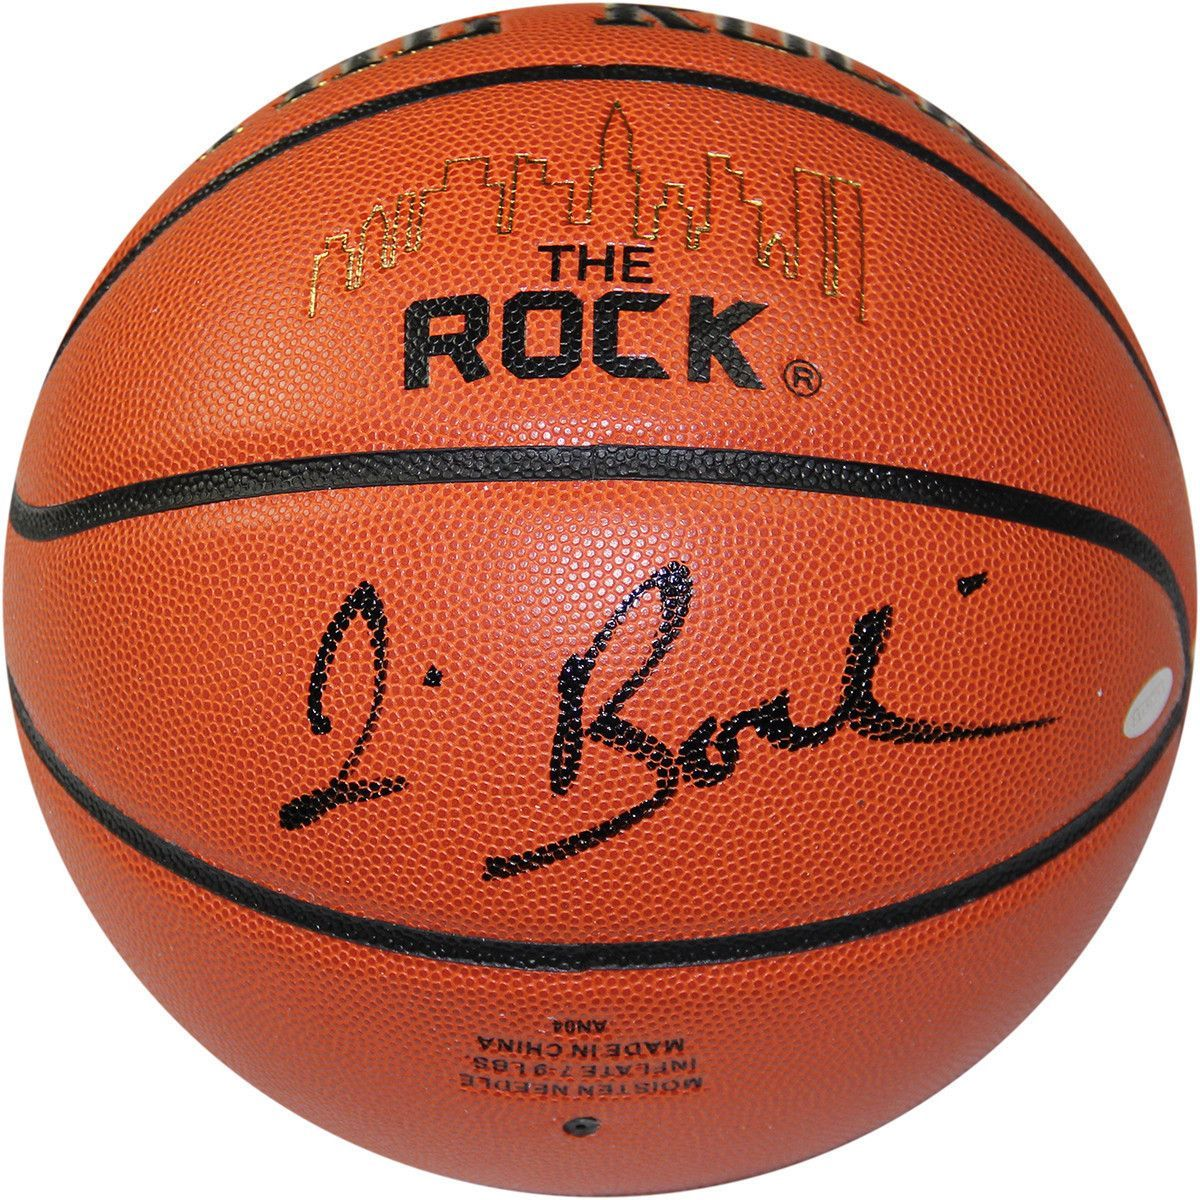 Jim Boeheim Signed The Rock Game Model Basketball Ncaa